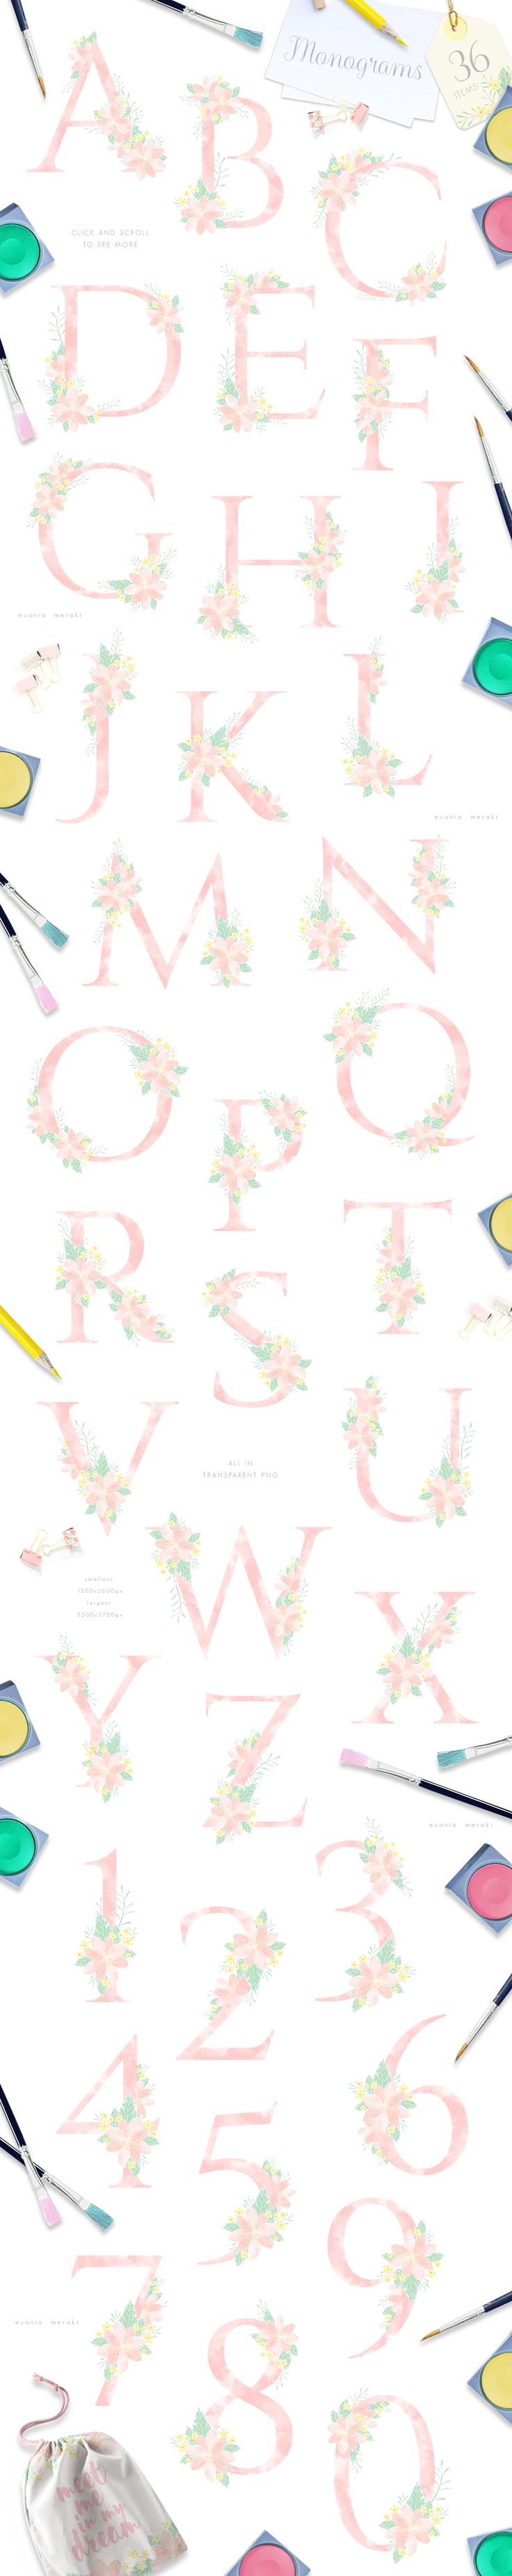 Hello Sunshine!  Introducing 'Gentle Spring Bloom + MONOGRAMS' floral graphic pack. In this graphic pack, I'm using new design technique that allowed me to achieve more natural and gentle visual style. Well enjoy! :)